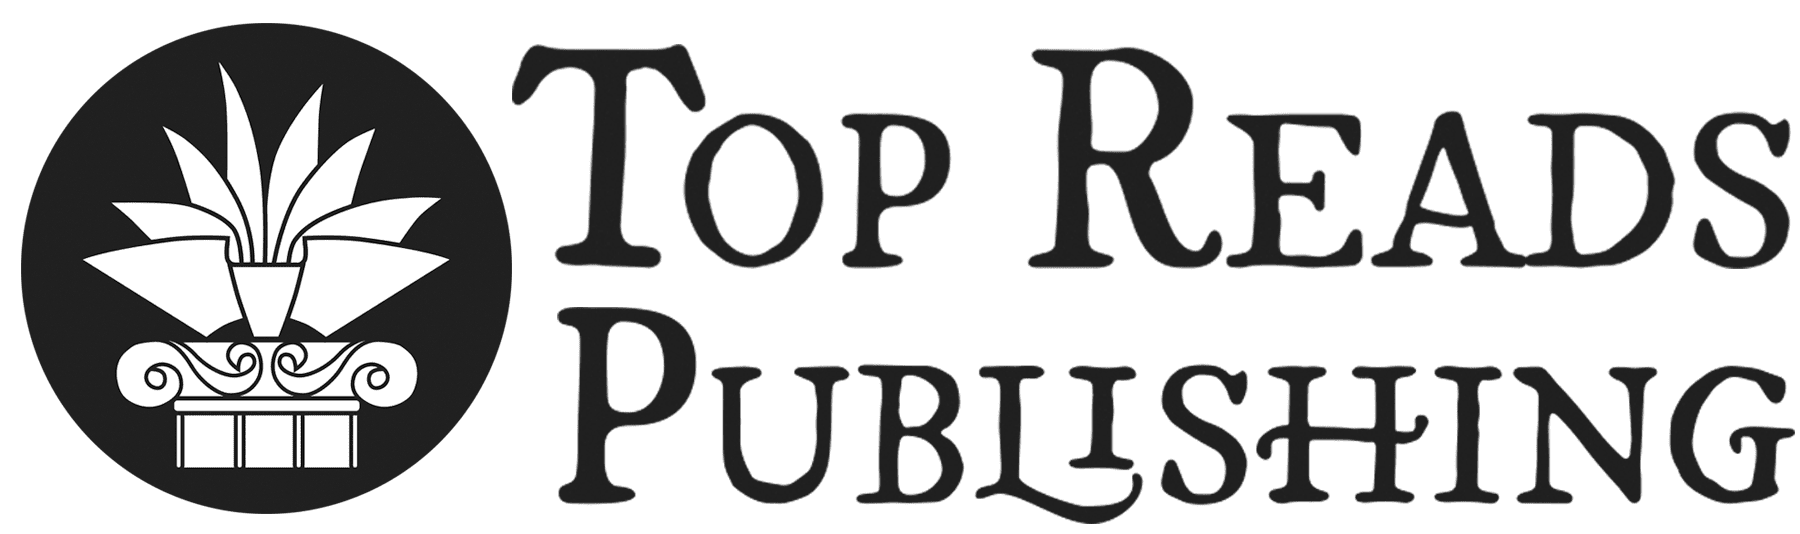 Top Reads Publishing